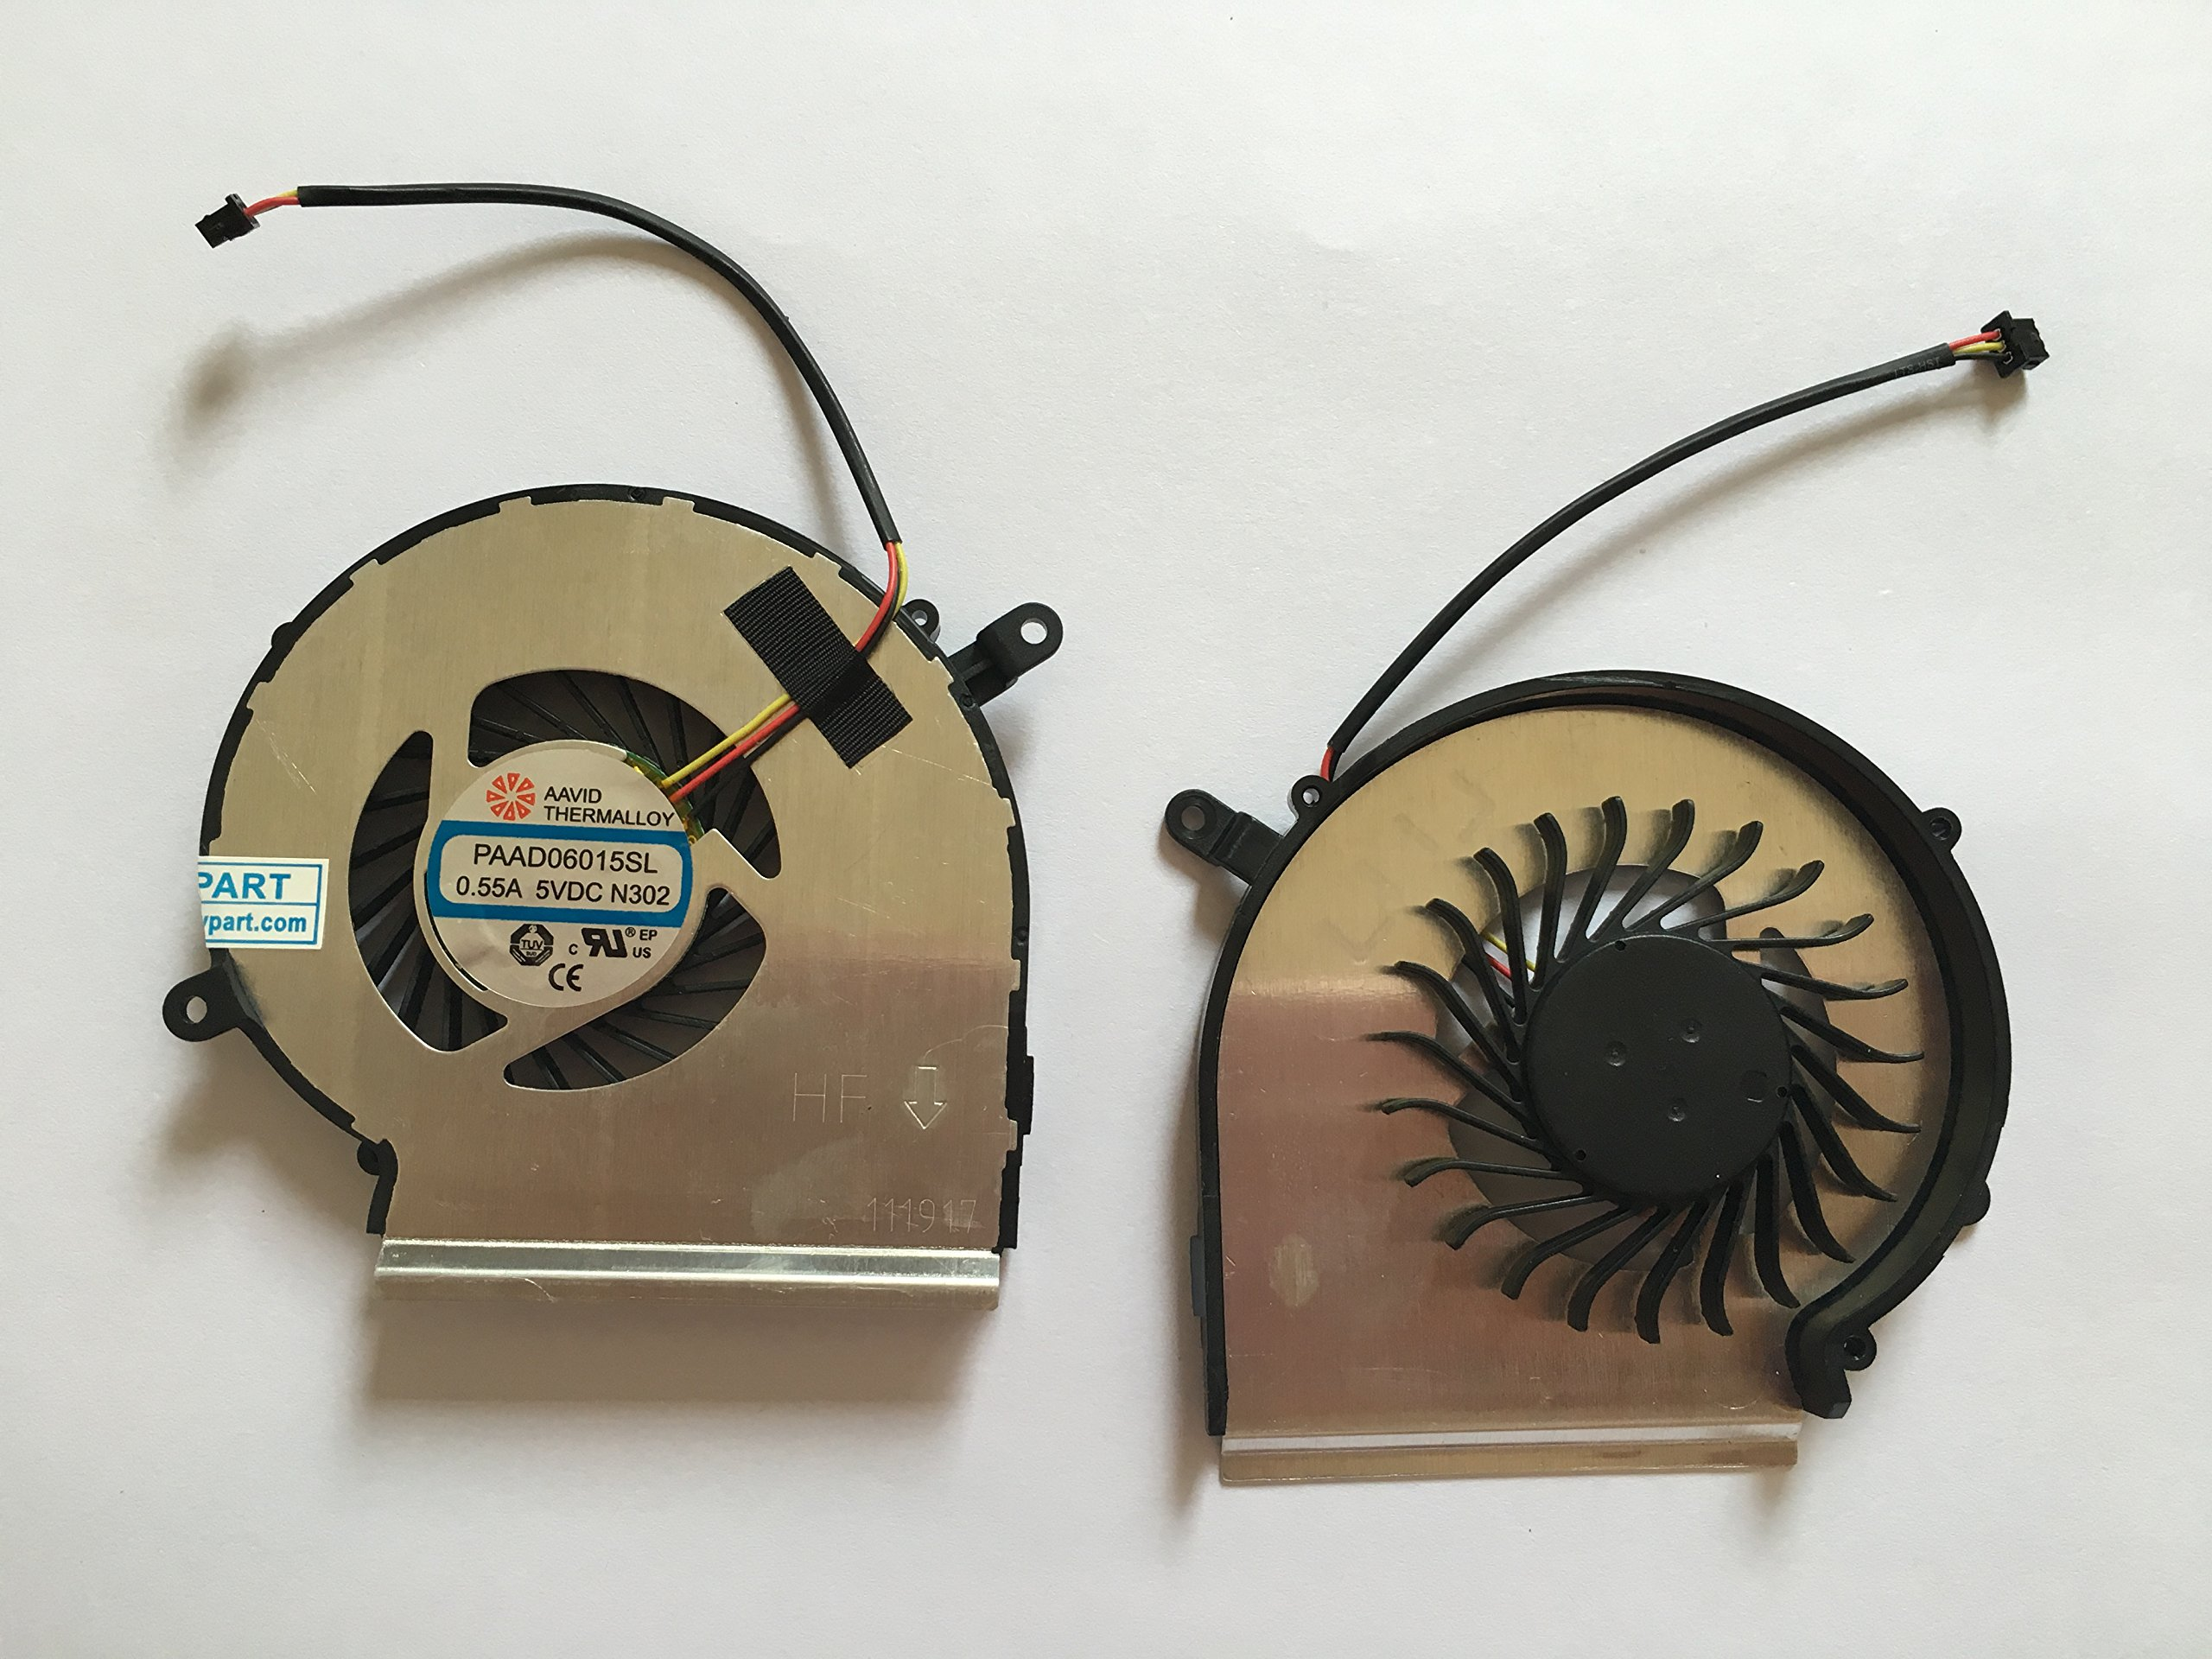 HK-Part Gpu Cooling Fan For AAVID THERMALLOY PAAD06015SL 0.55A 5VDC N302 , 3-Pin 3-Wire